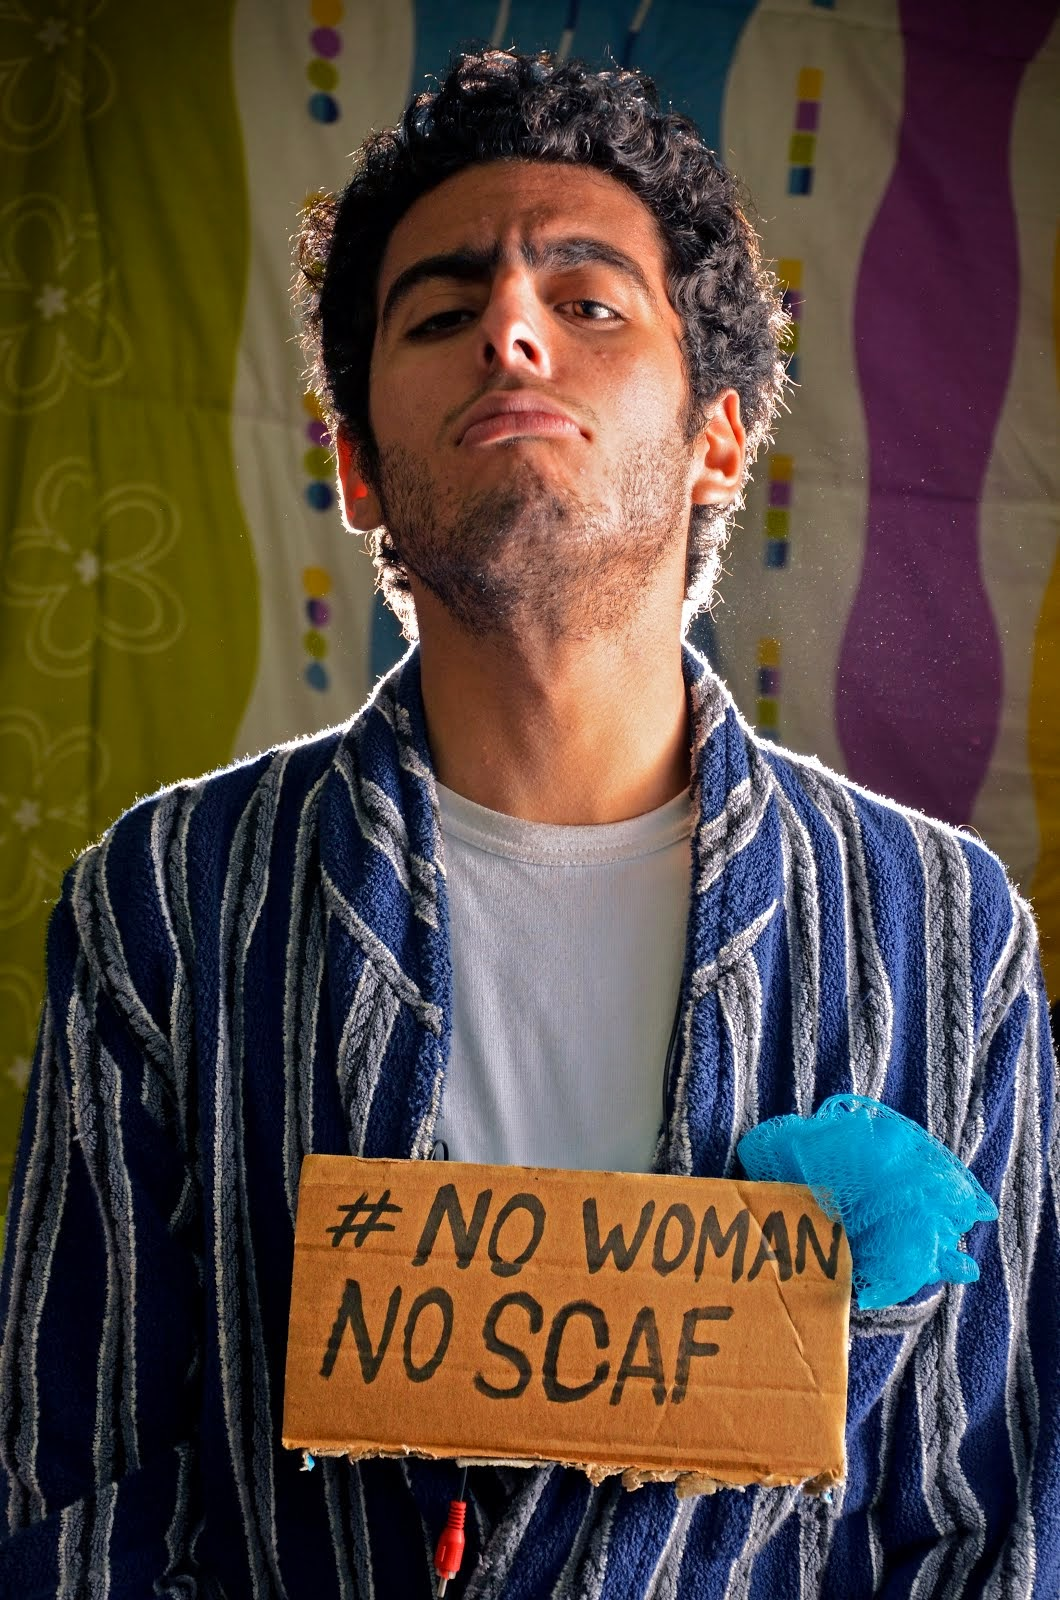 No Woman, No SCAF